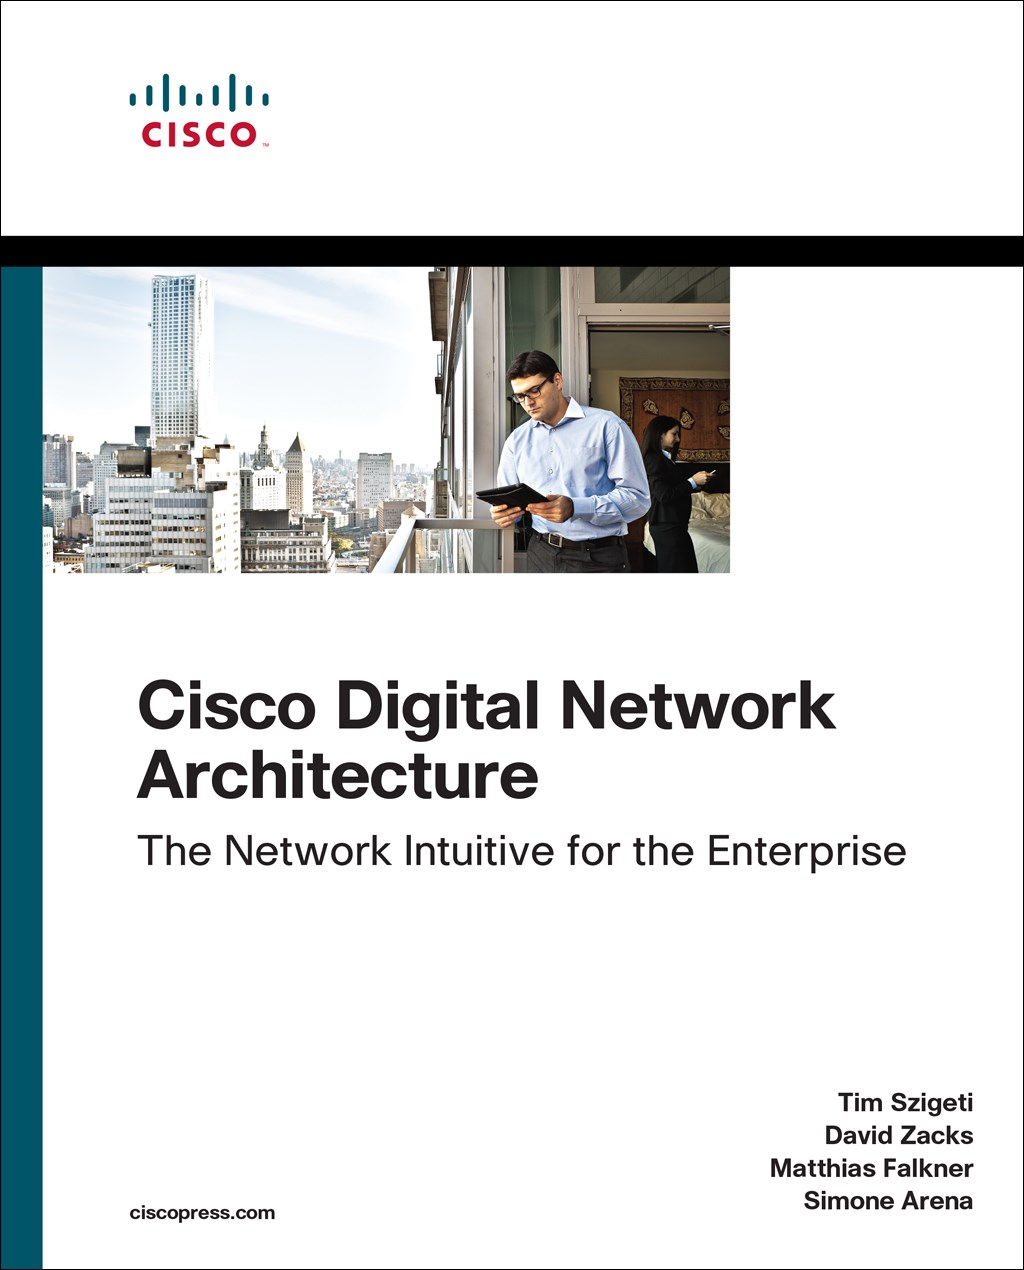 Cisco Digital Network Architecture: Intent-based Networking for the Enterprise